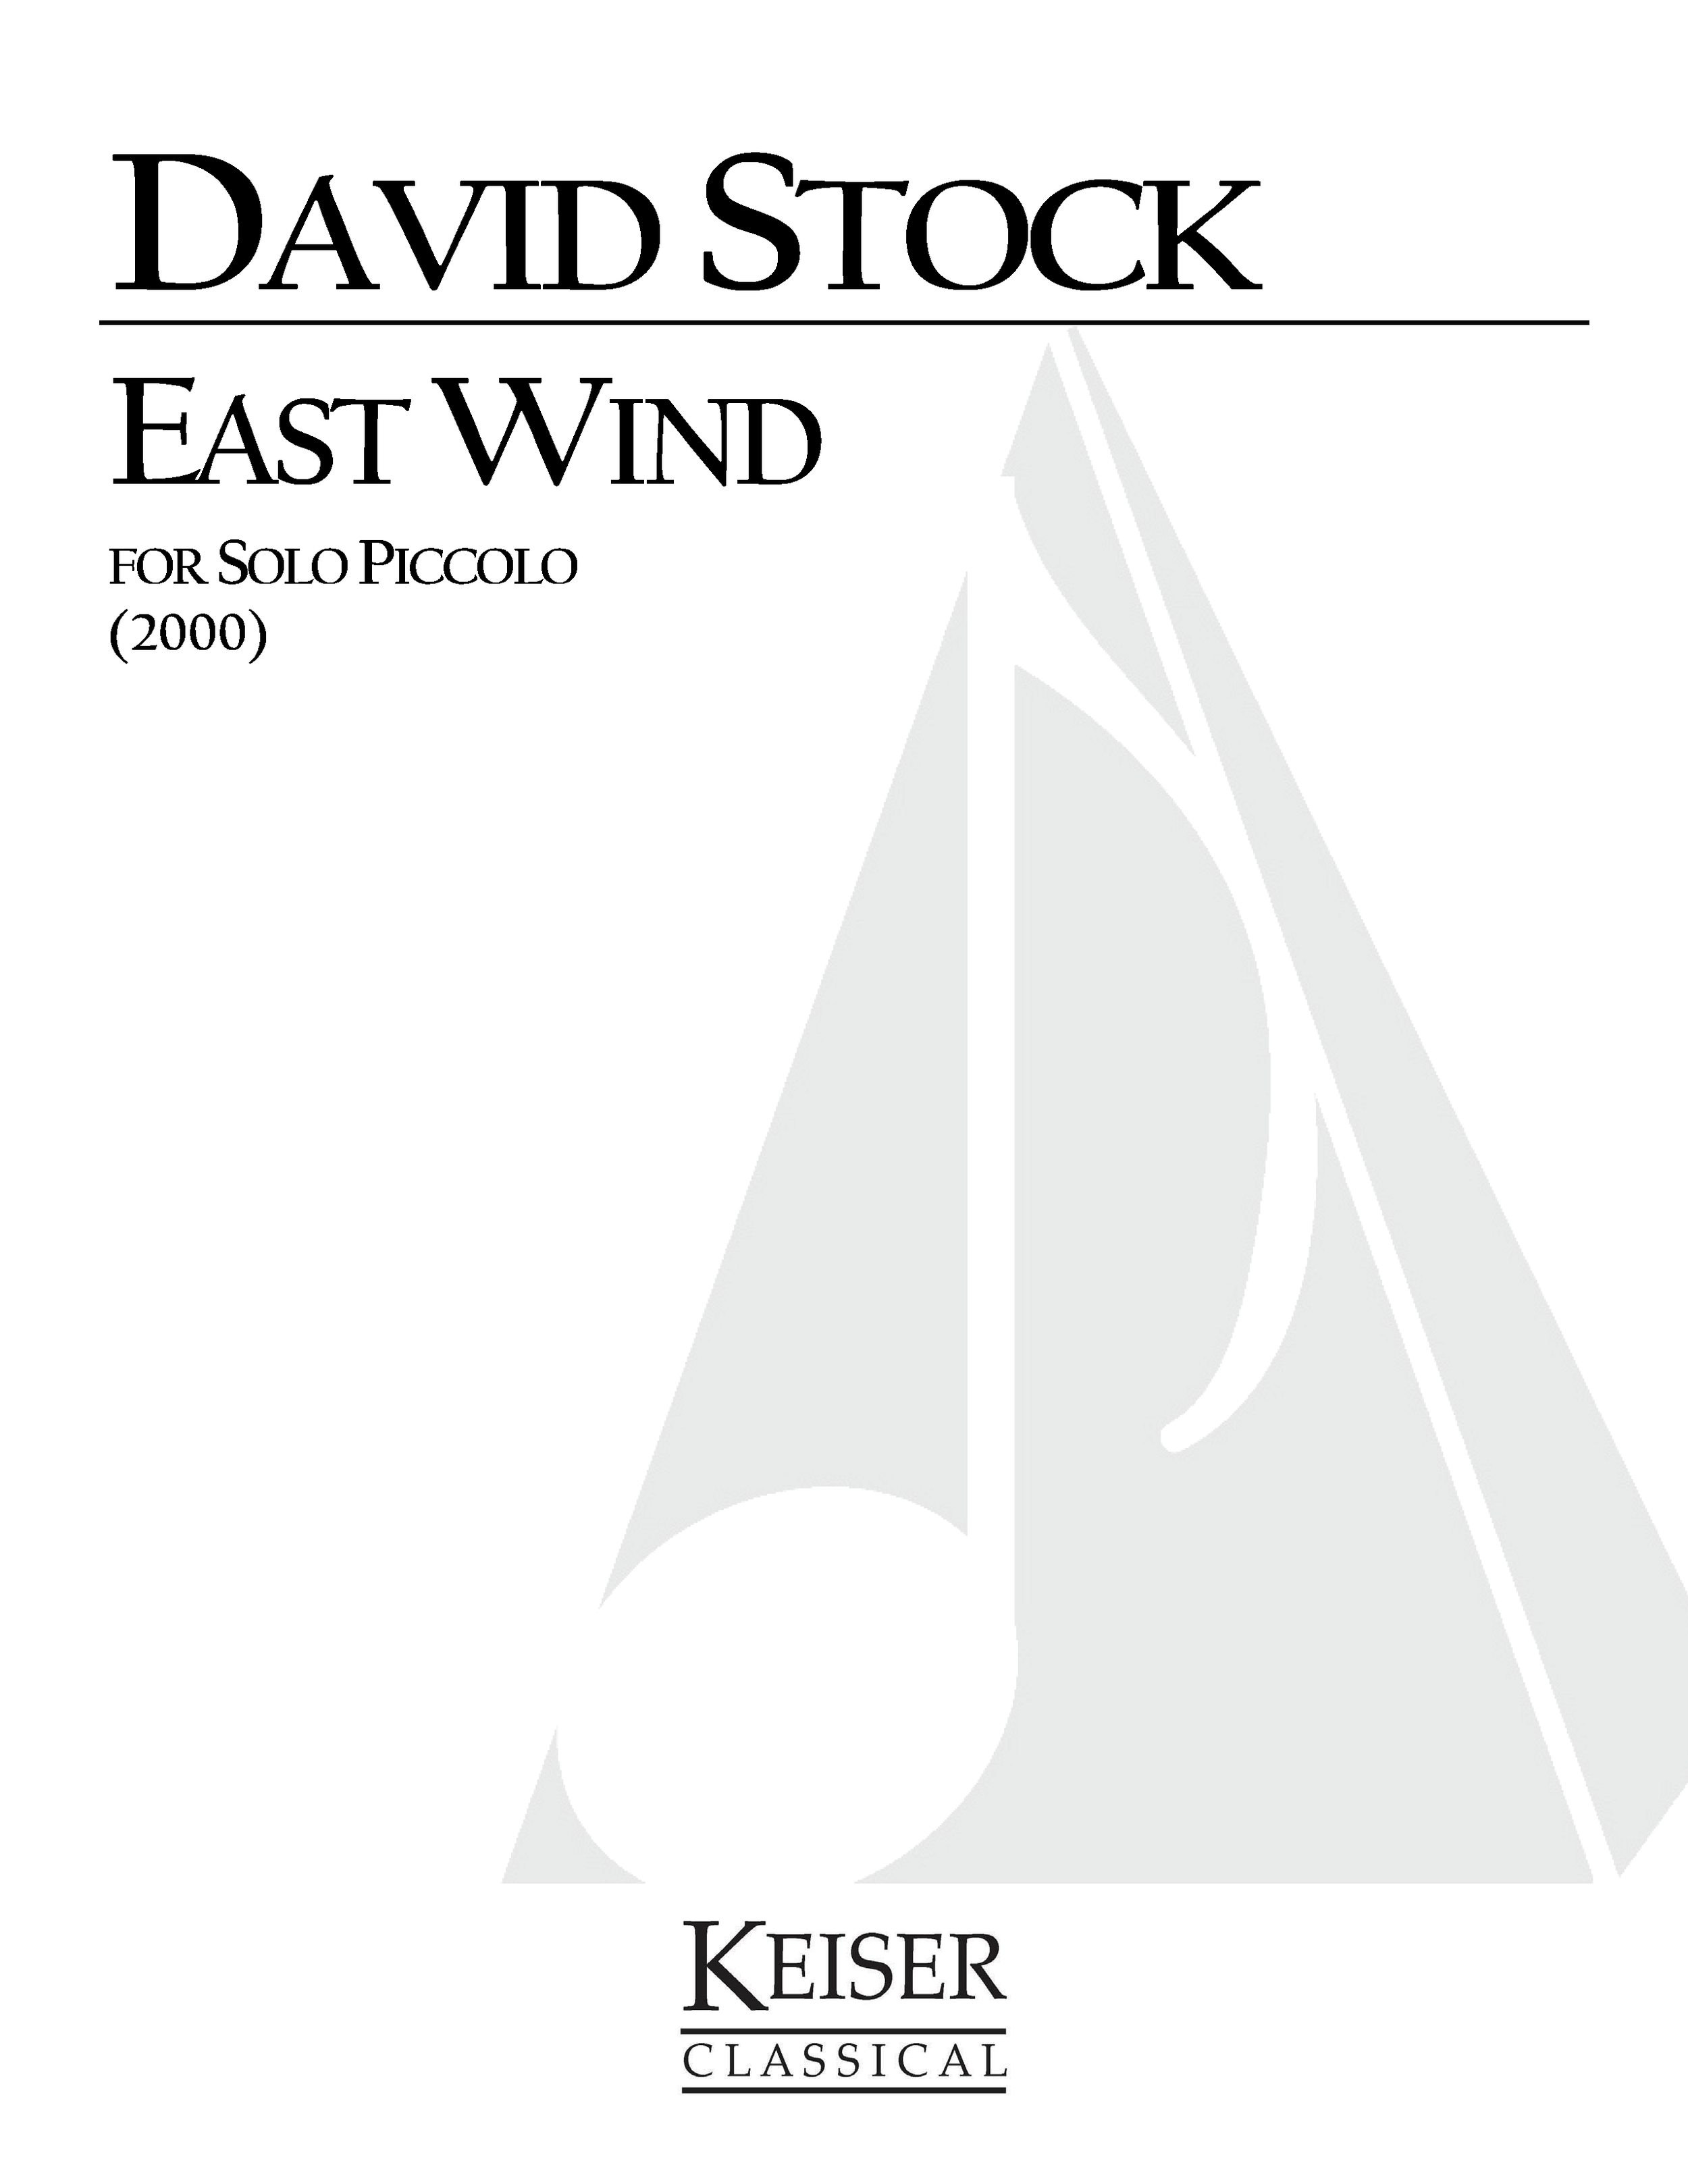 East Wind (2000) - Piccolo SoloRent/Buy: Keiser Music